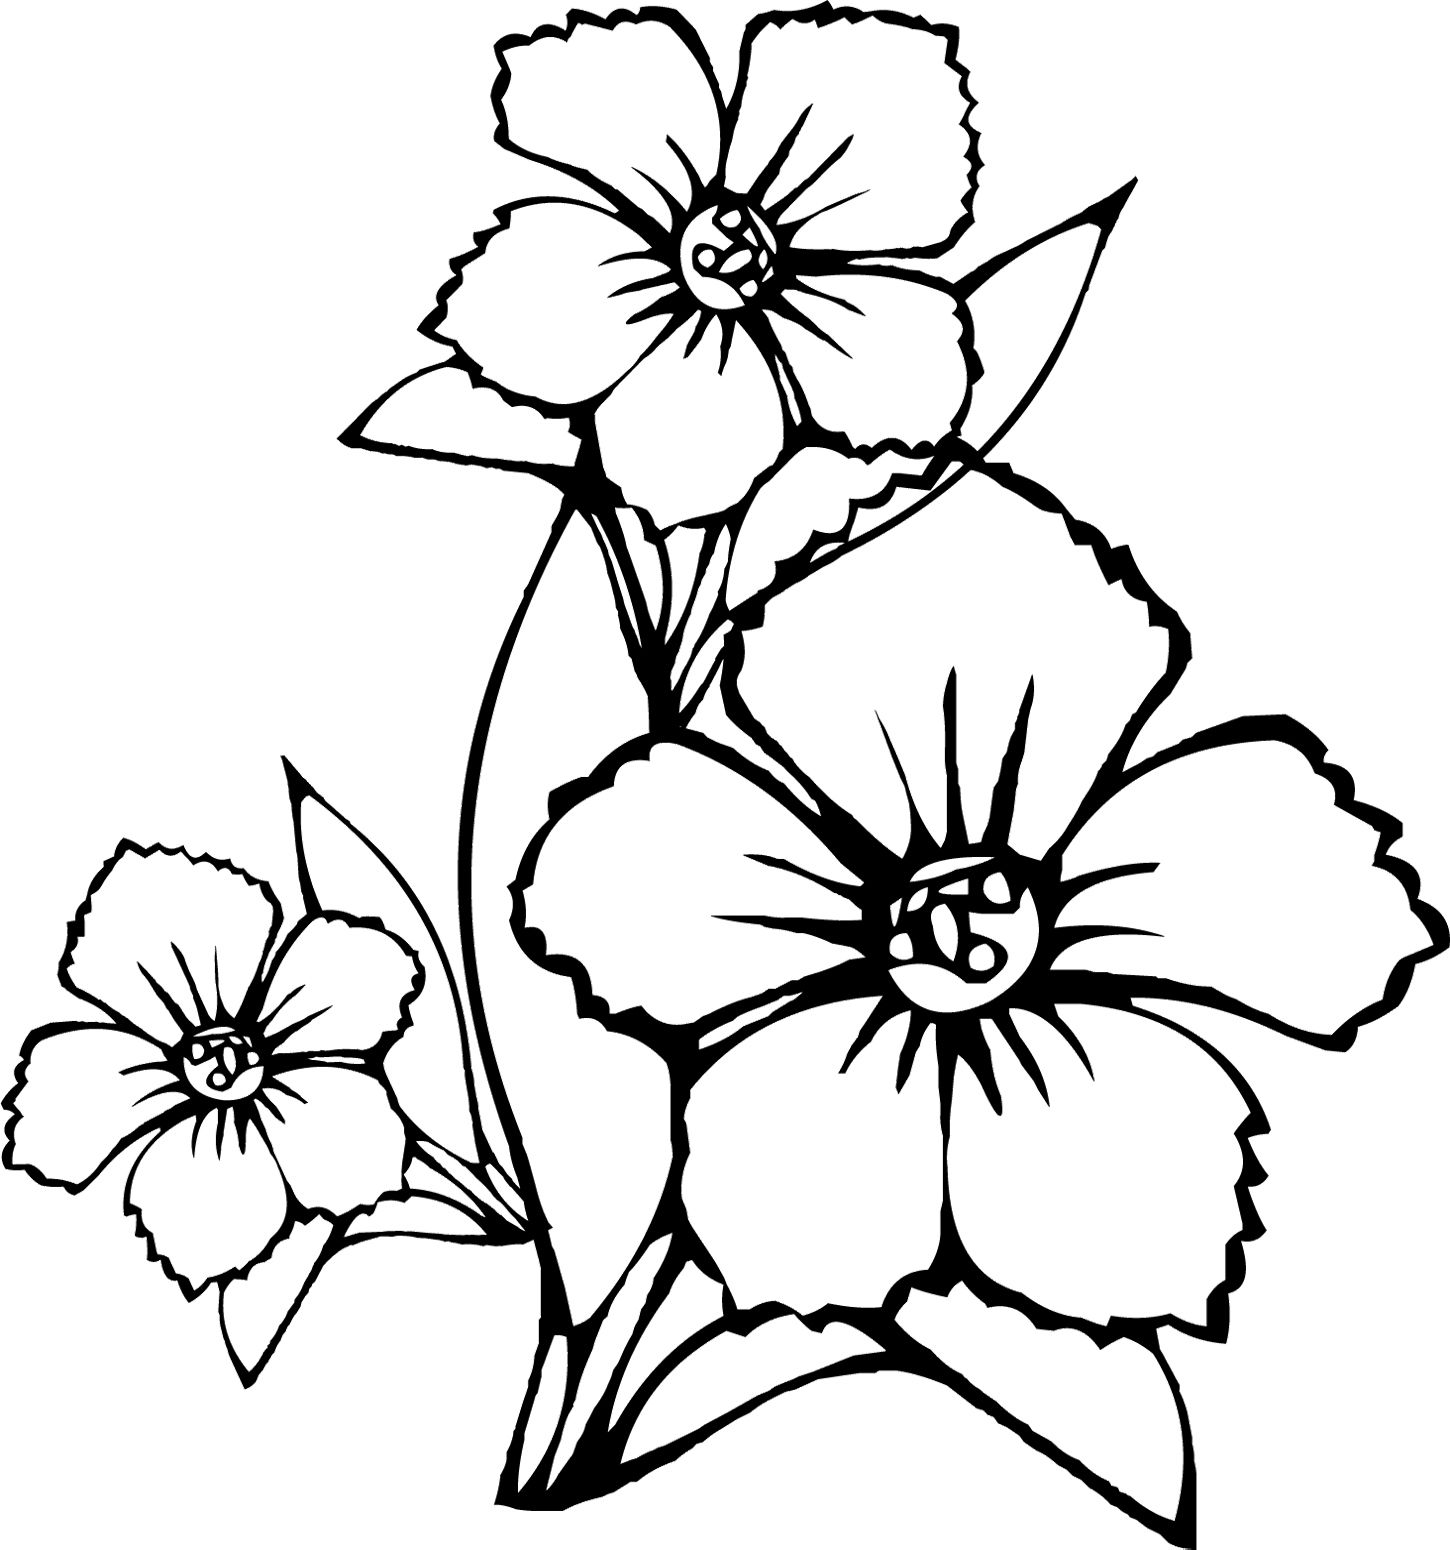 1450x1550 Buttercup Flower Coloring Page